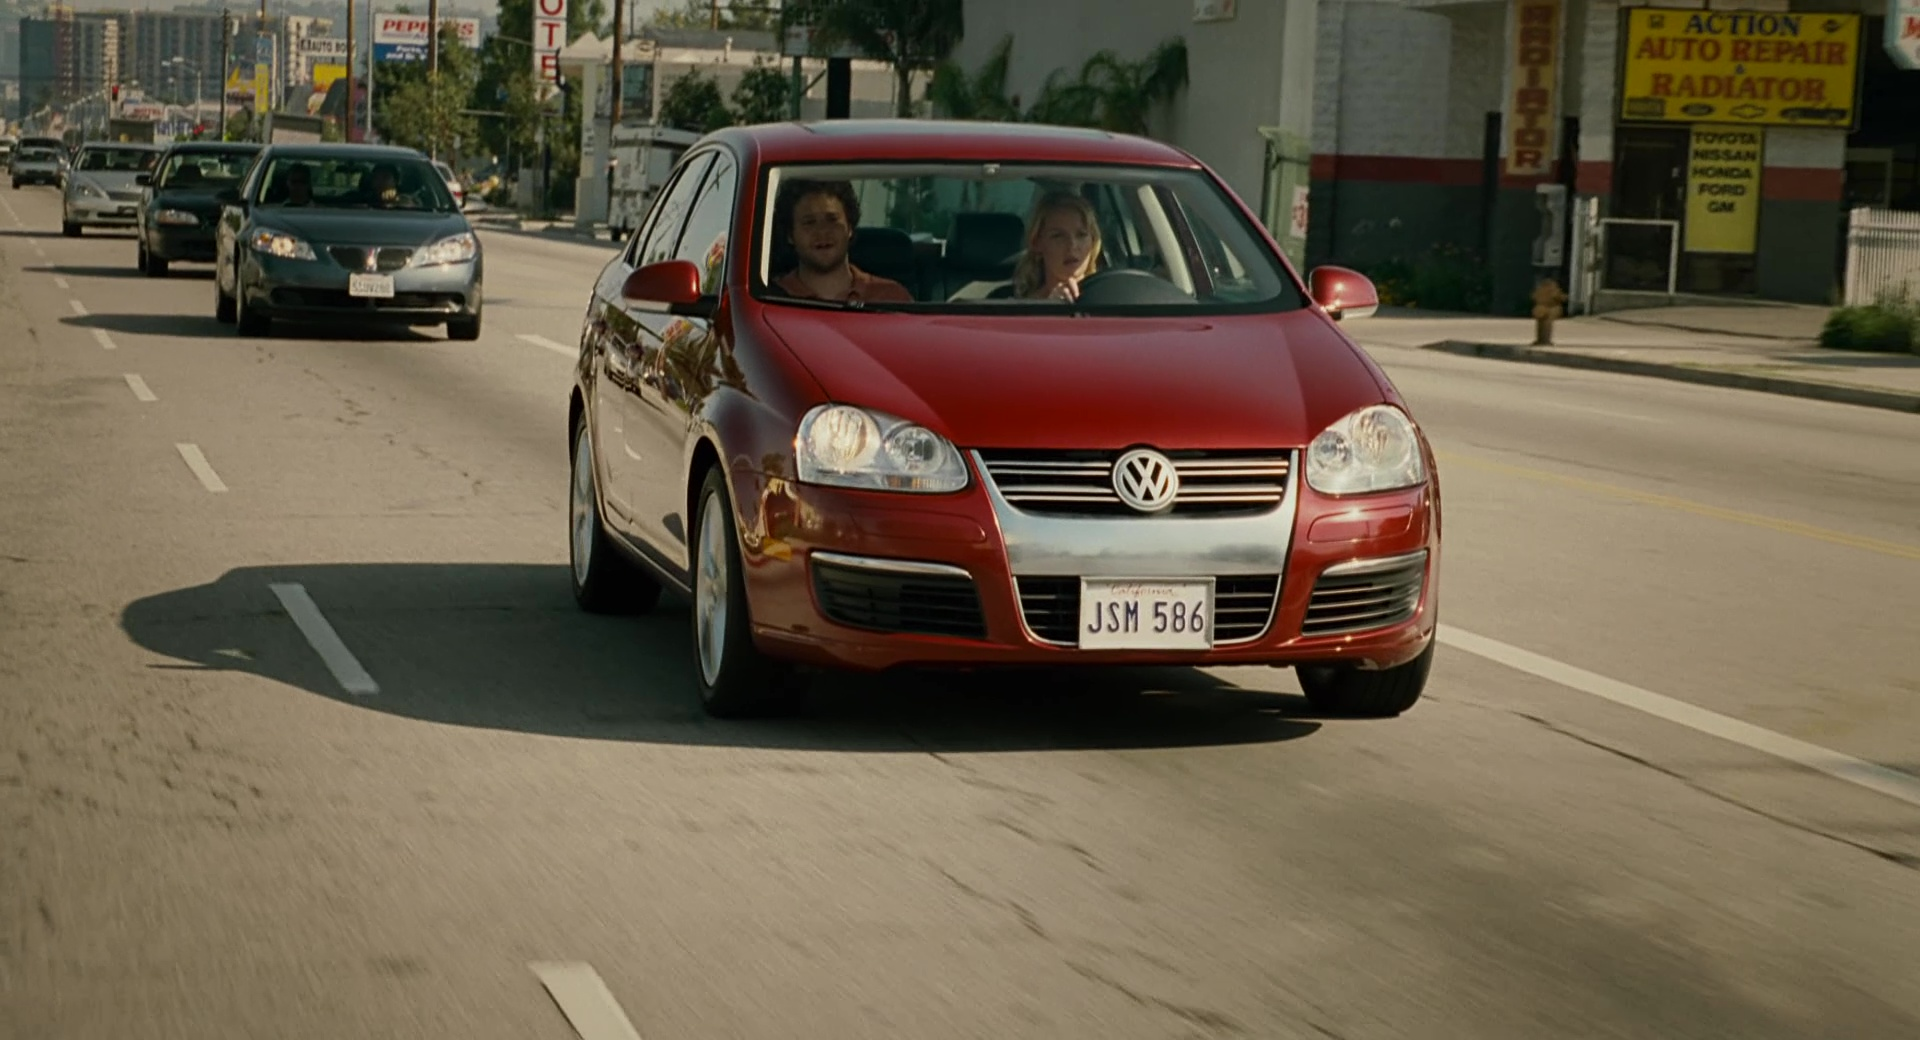 Volkswagen Jetta A5 [Typ 1K] Red Car Used by Katherine Heigl in Knocked Up (2007) Movie